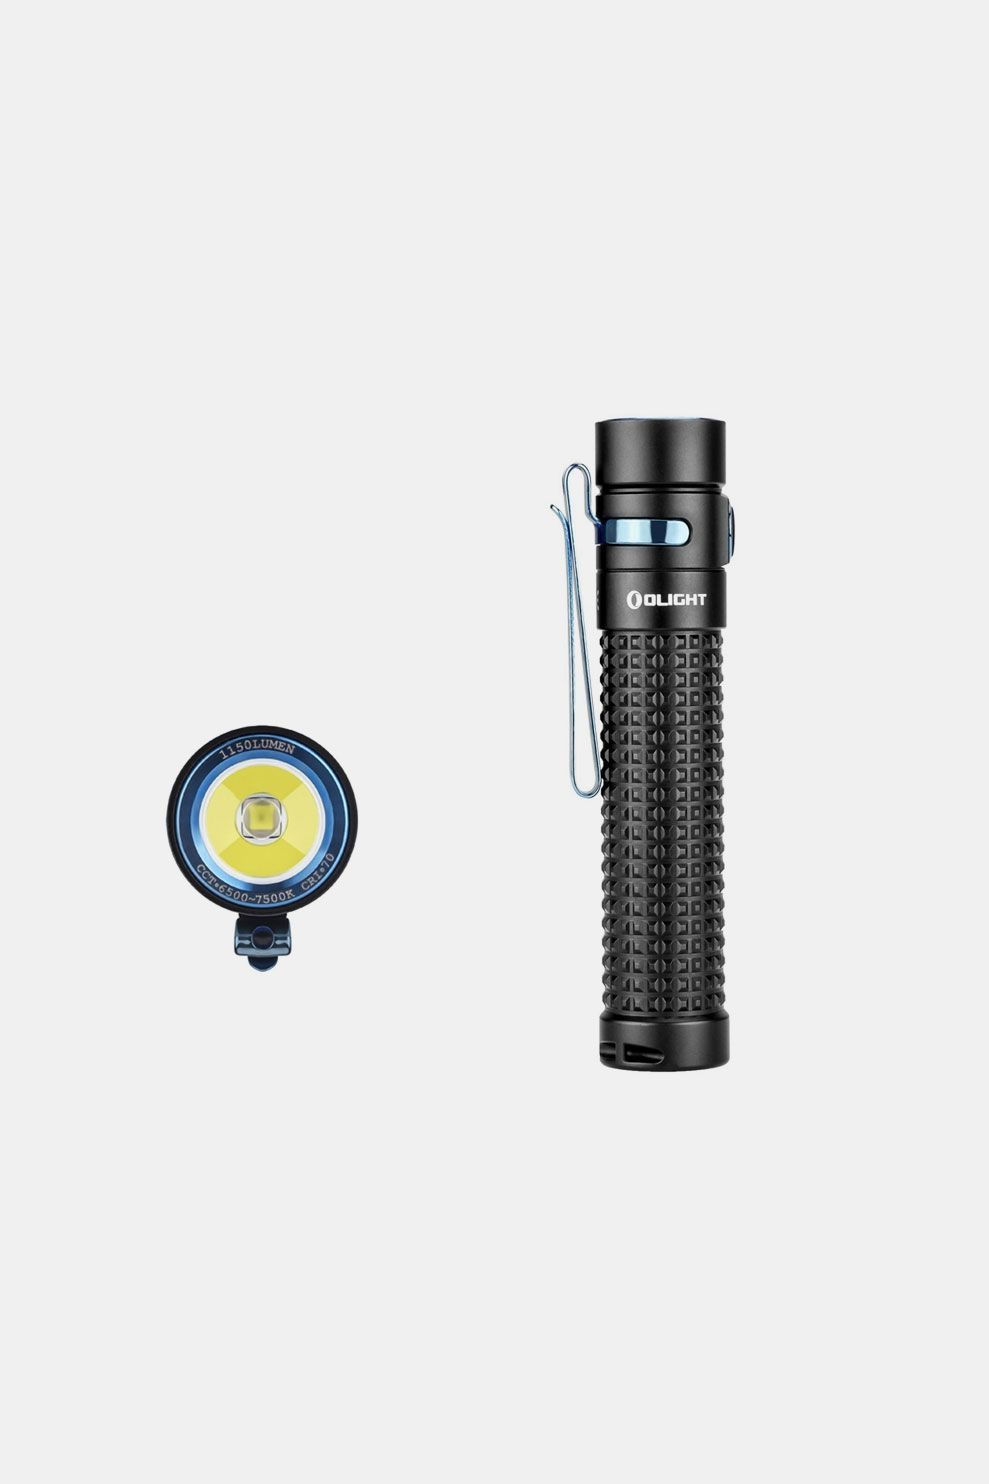 Olight S2R II Baton Rechargeable Zaklamp Zwart